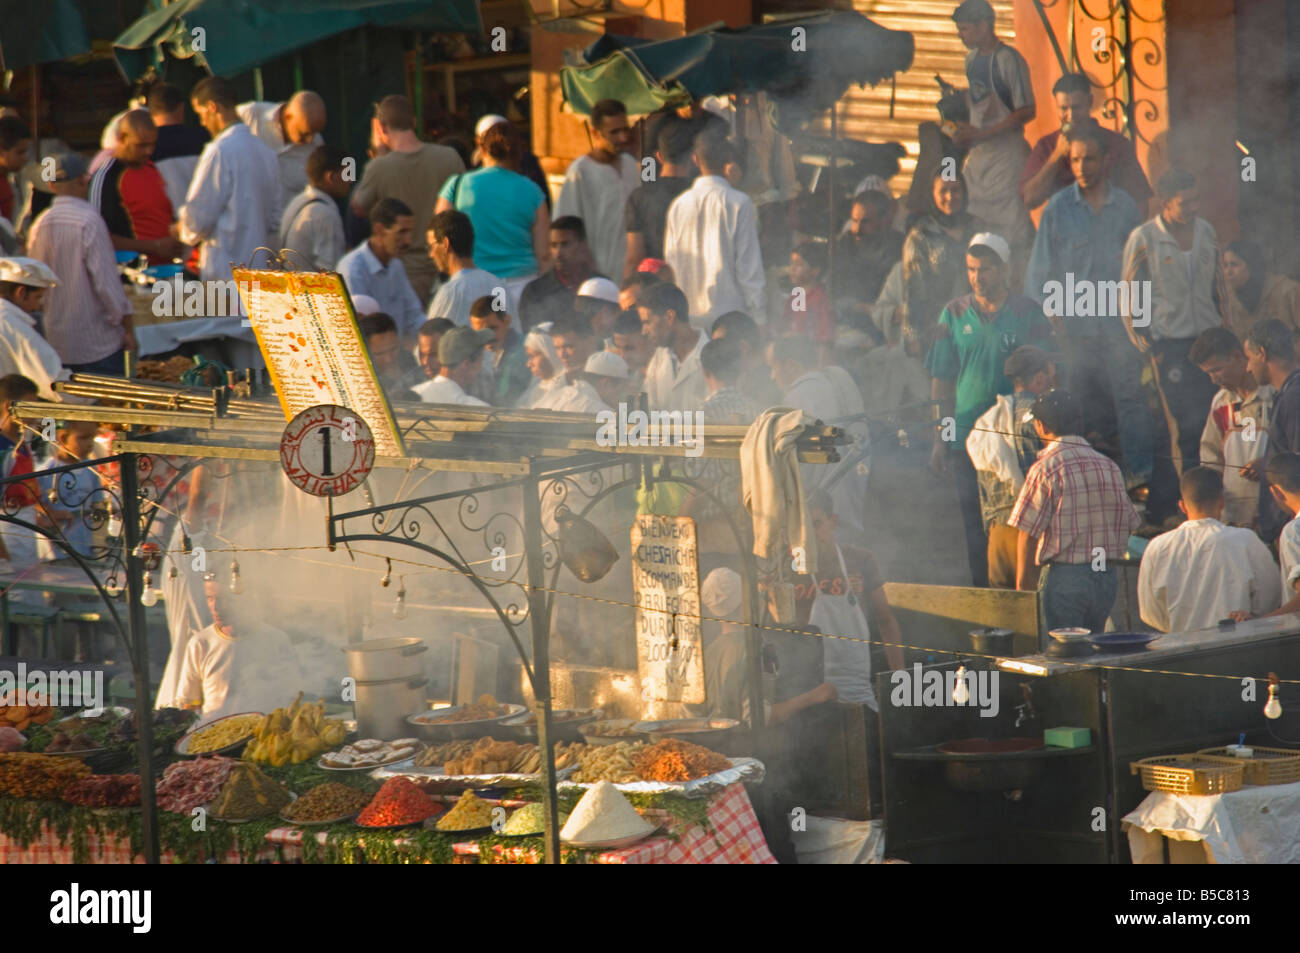 A compressed perspective aerial view of the open air 'restaurants' at the Djemaa El Fna in Marrakesh. - Stock Image